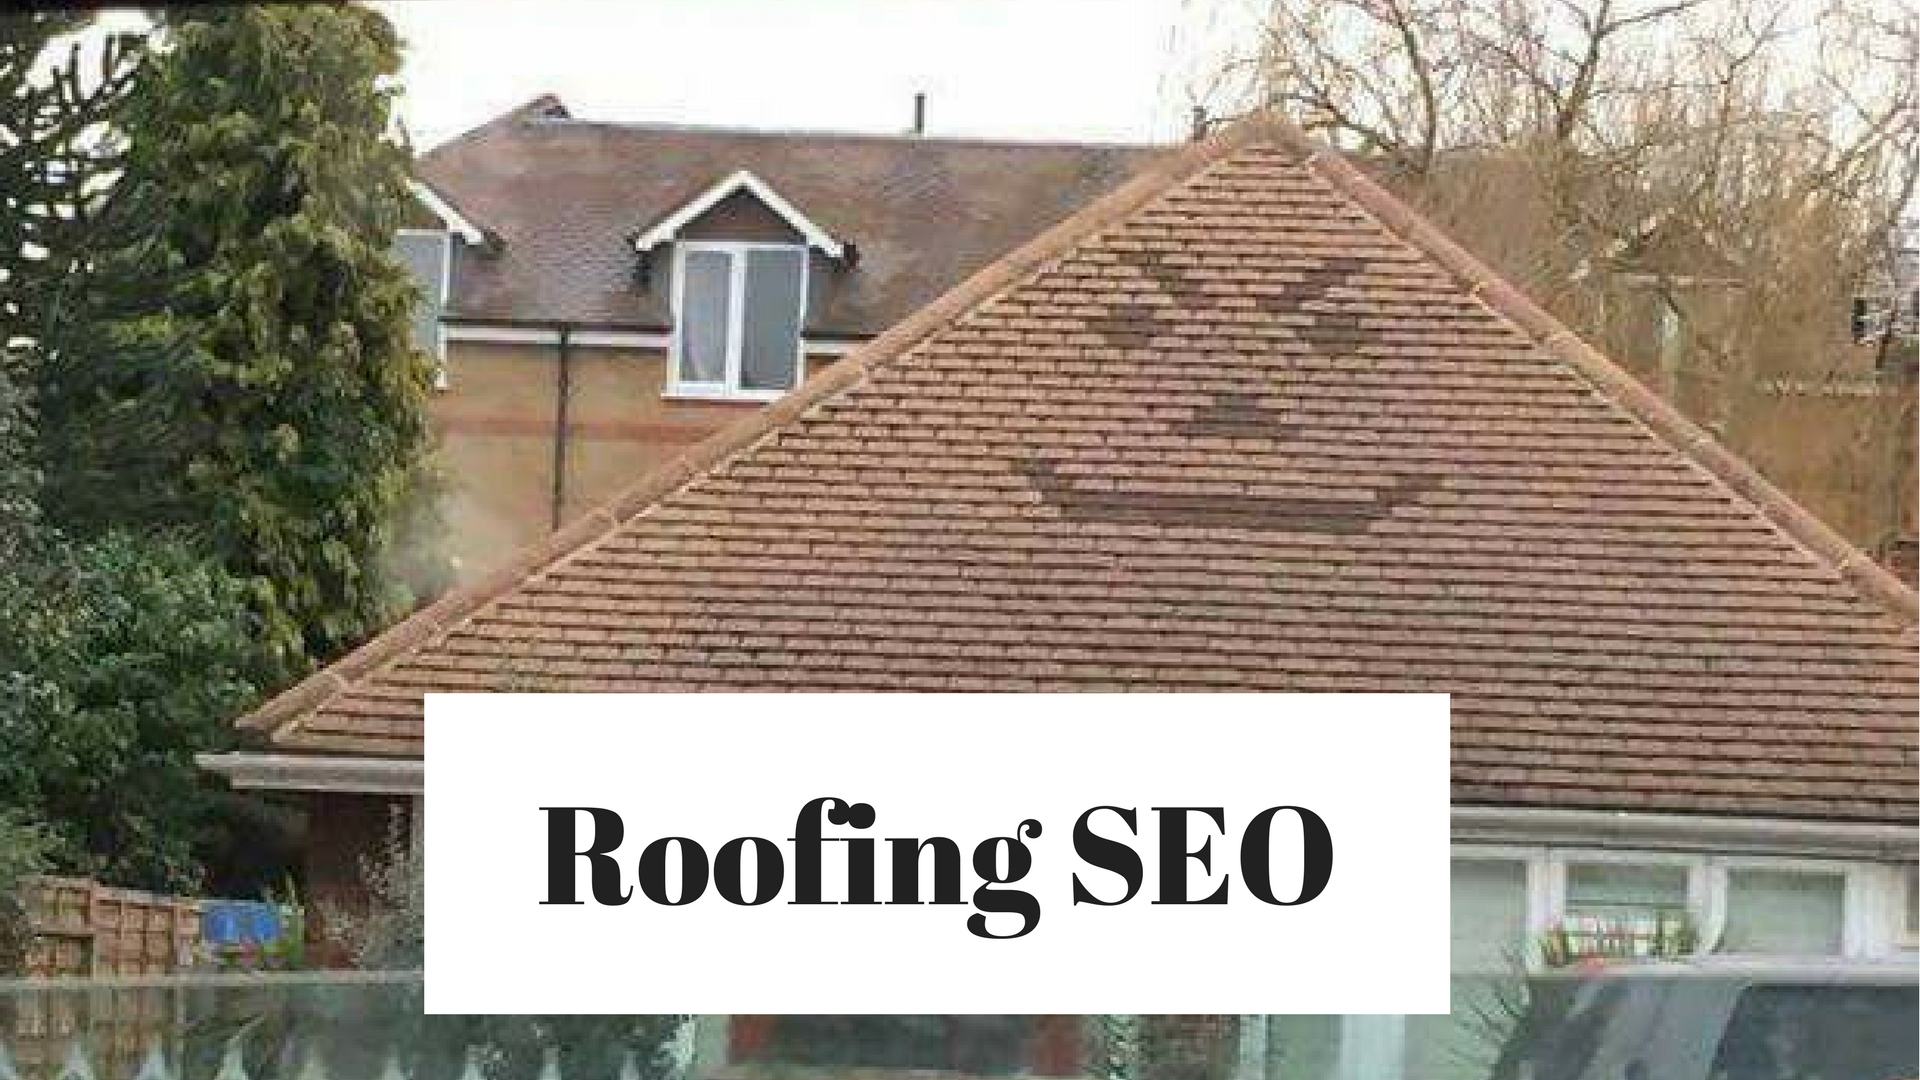 Roofing Seo Secrets To Growing Your Roofing Business